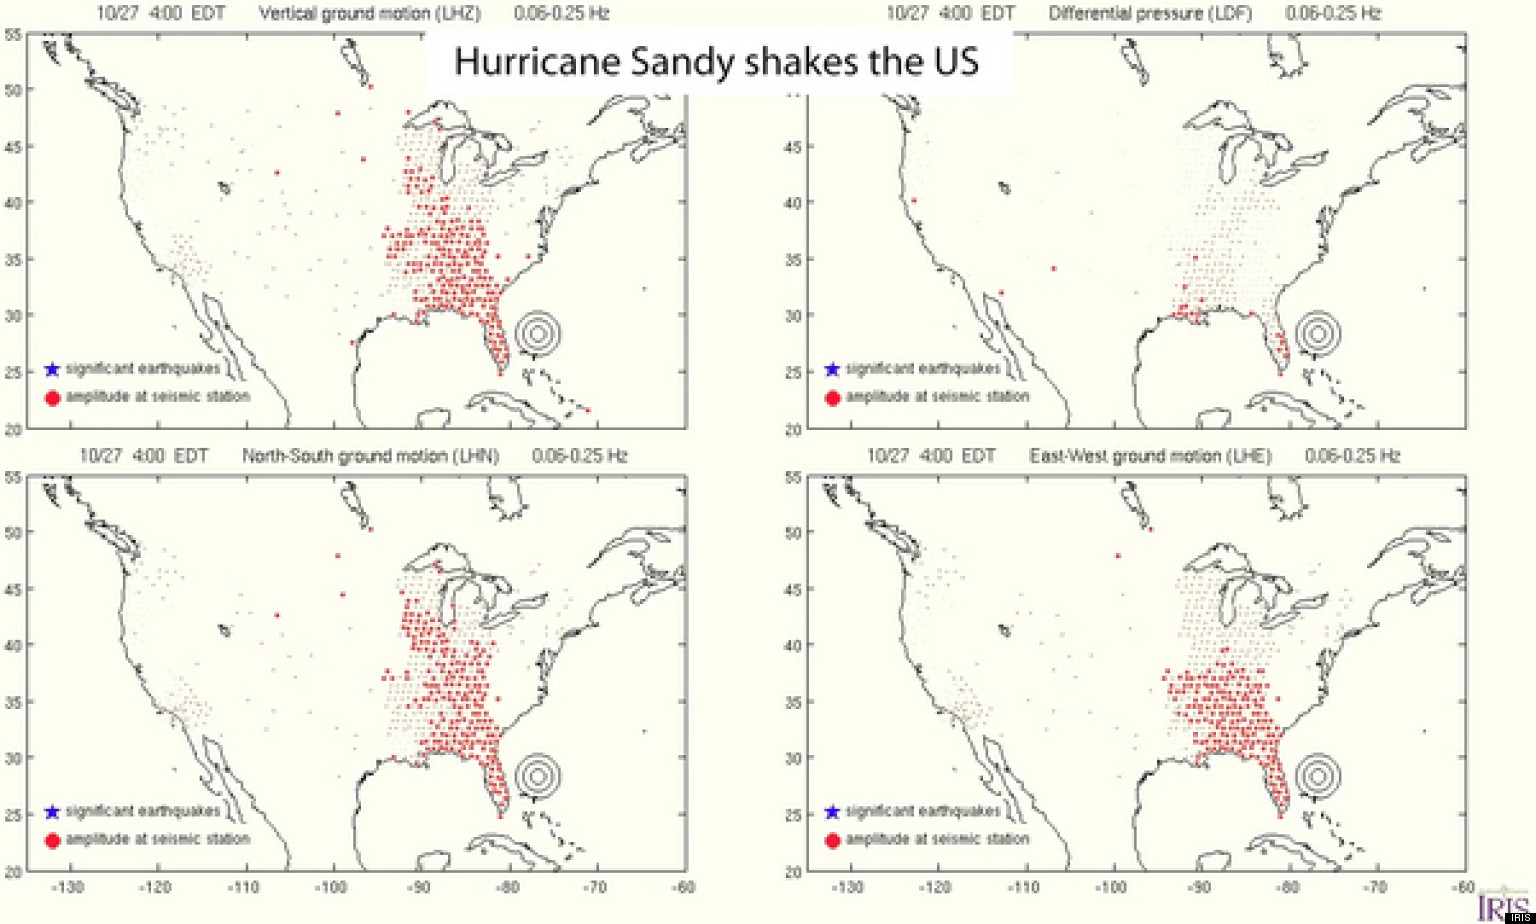 Hurricane Sandy Caused Seismic Waves To Shake U.S. Like An